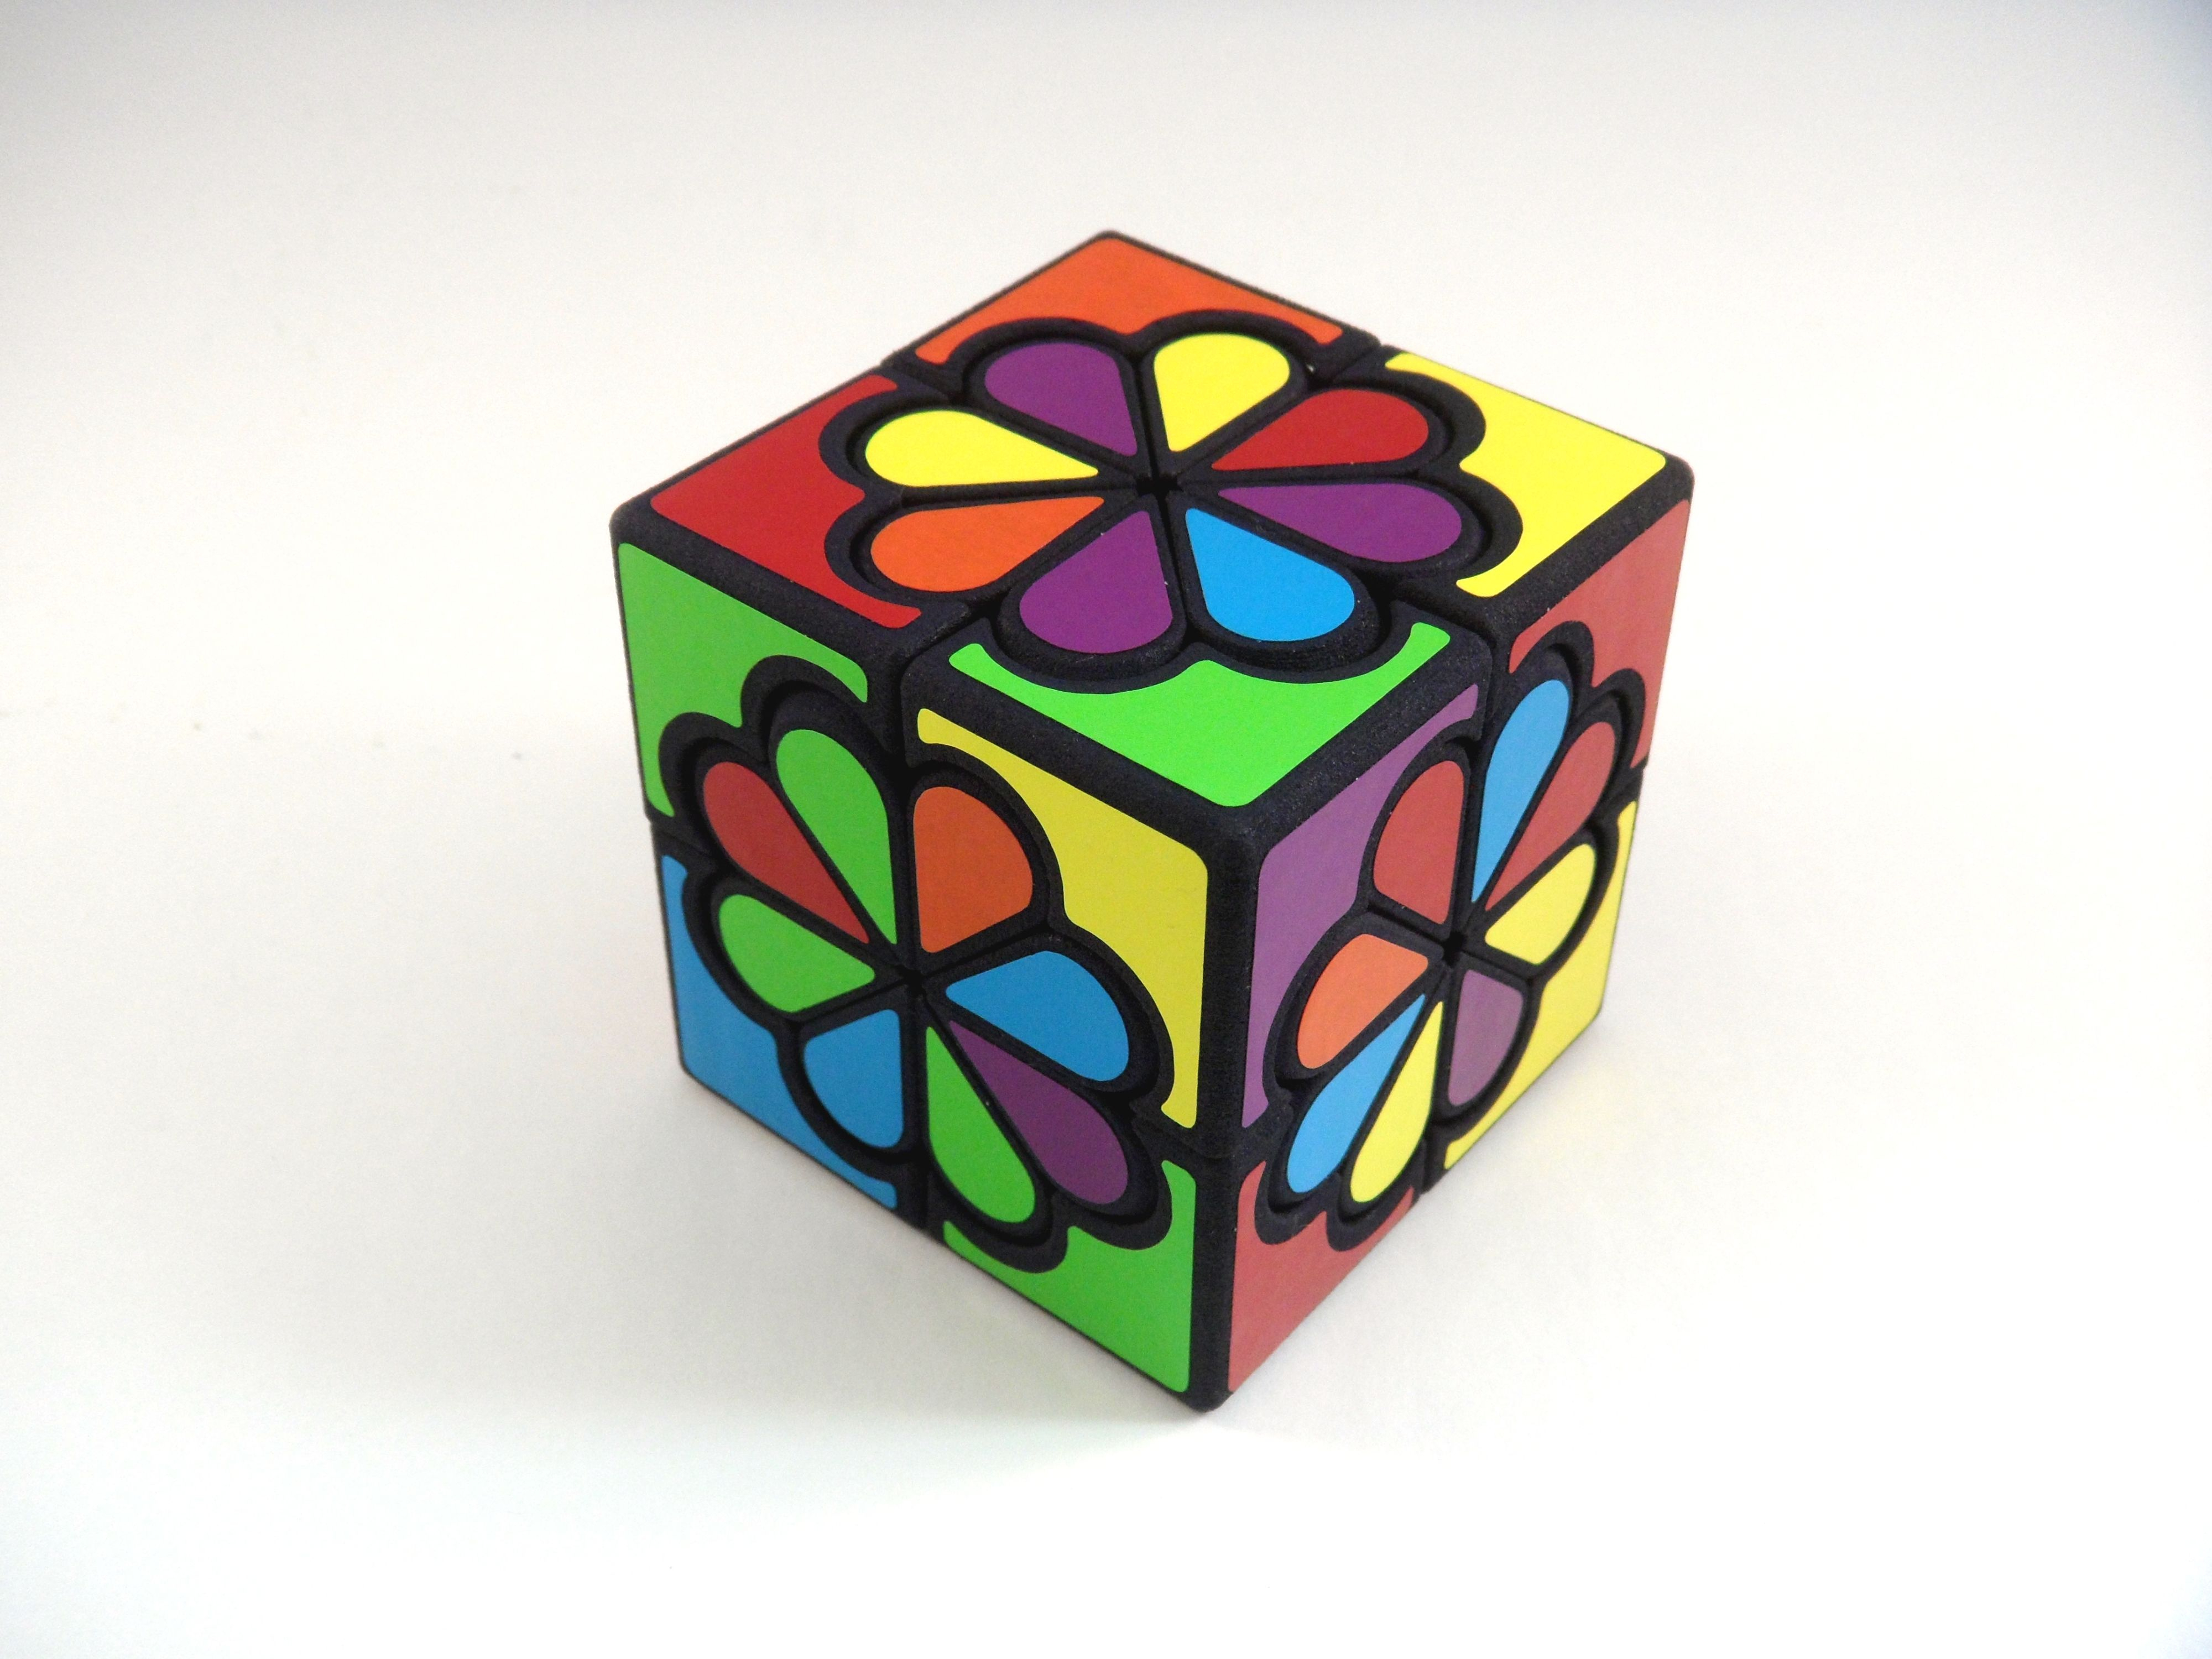 3D Printing Puzzles In Polyamide | 3D Printing Blog | I.materialise - 3D Printable Puzzles